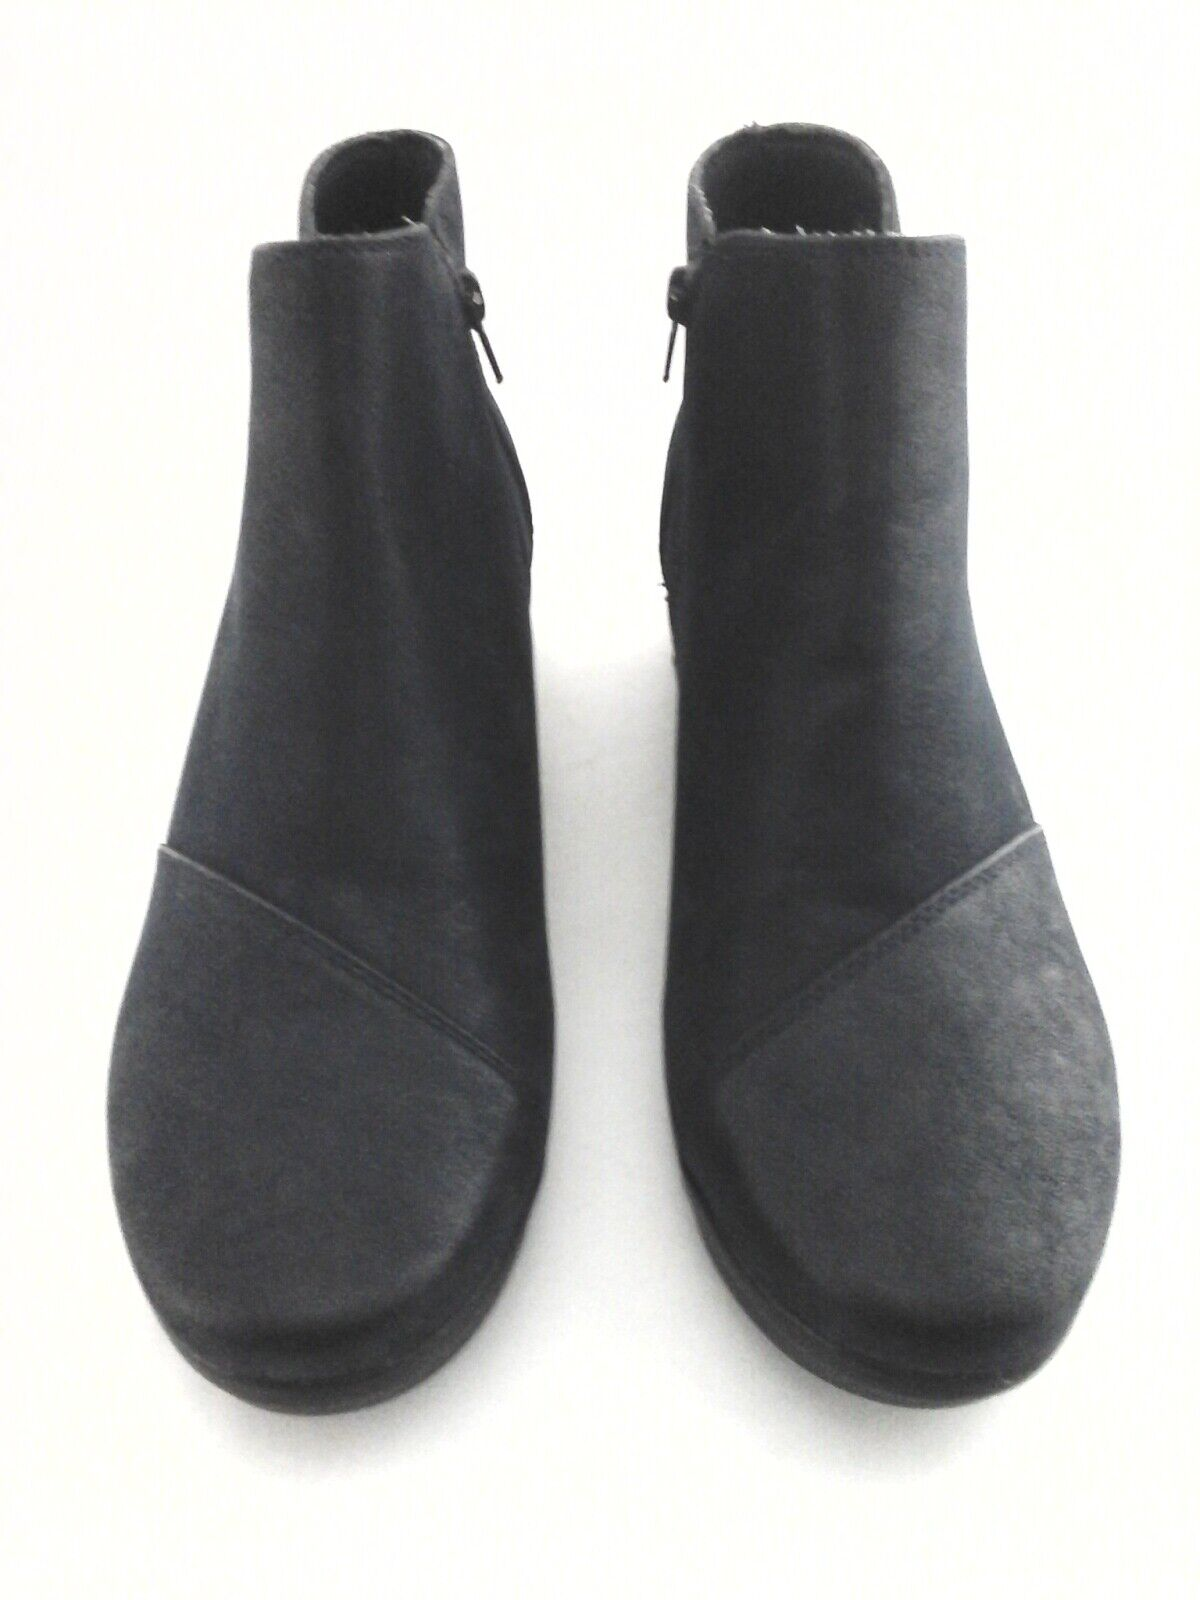 CLARKS CLOUDSTEPPERS Ankle Boot Caddell Tropic Navy Navy Navy Wedge Bootie 12 44  120 New 26d12e